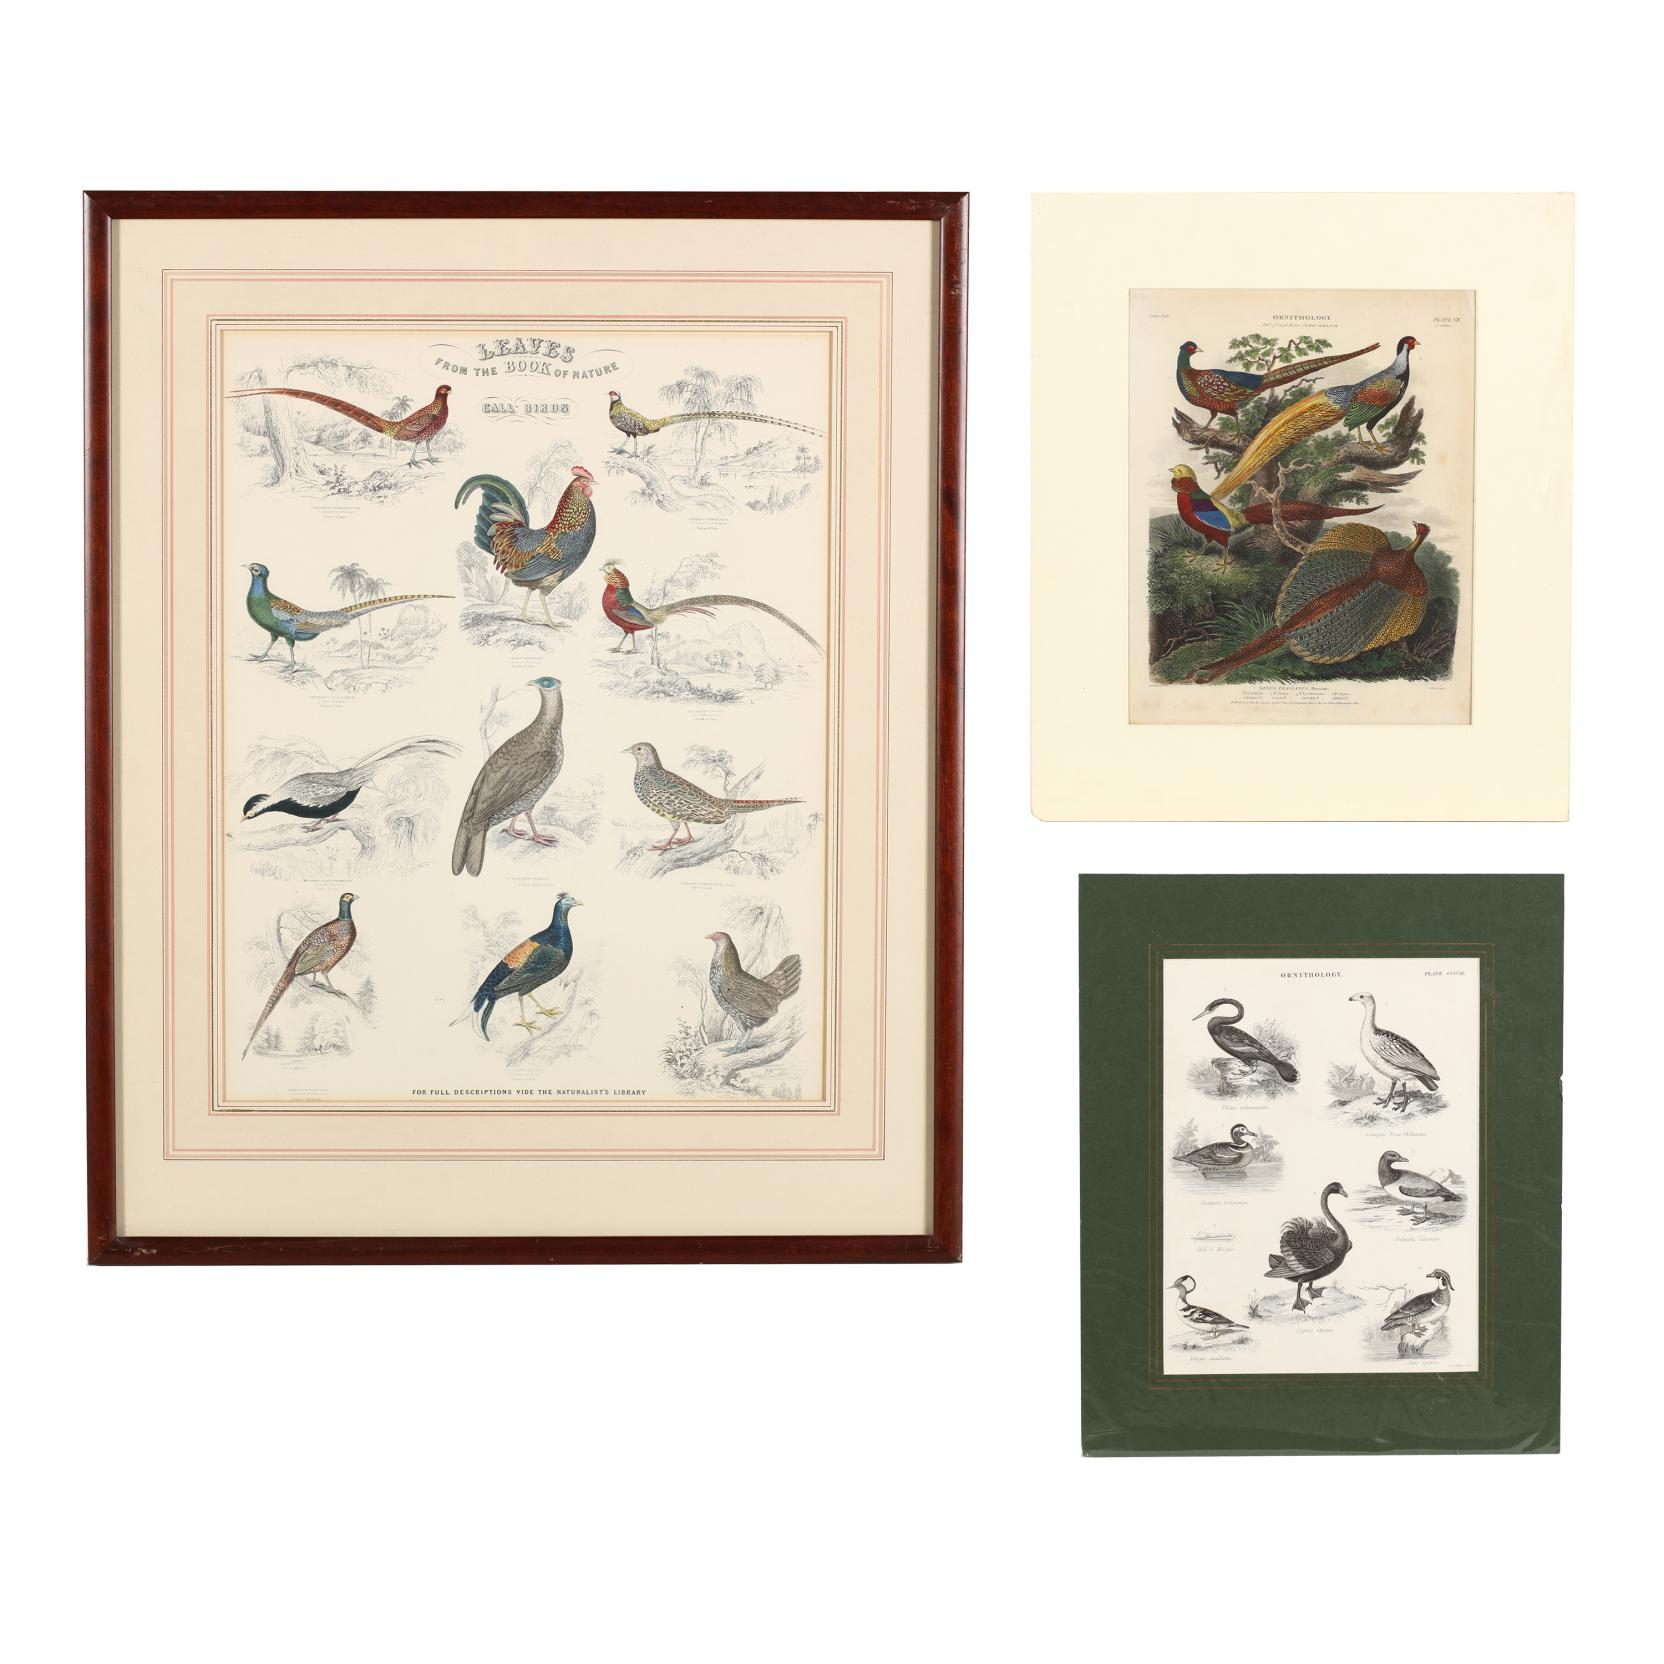 three-19th-century-engravings-picturing-multiple-birds